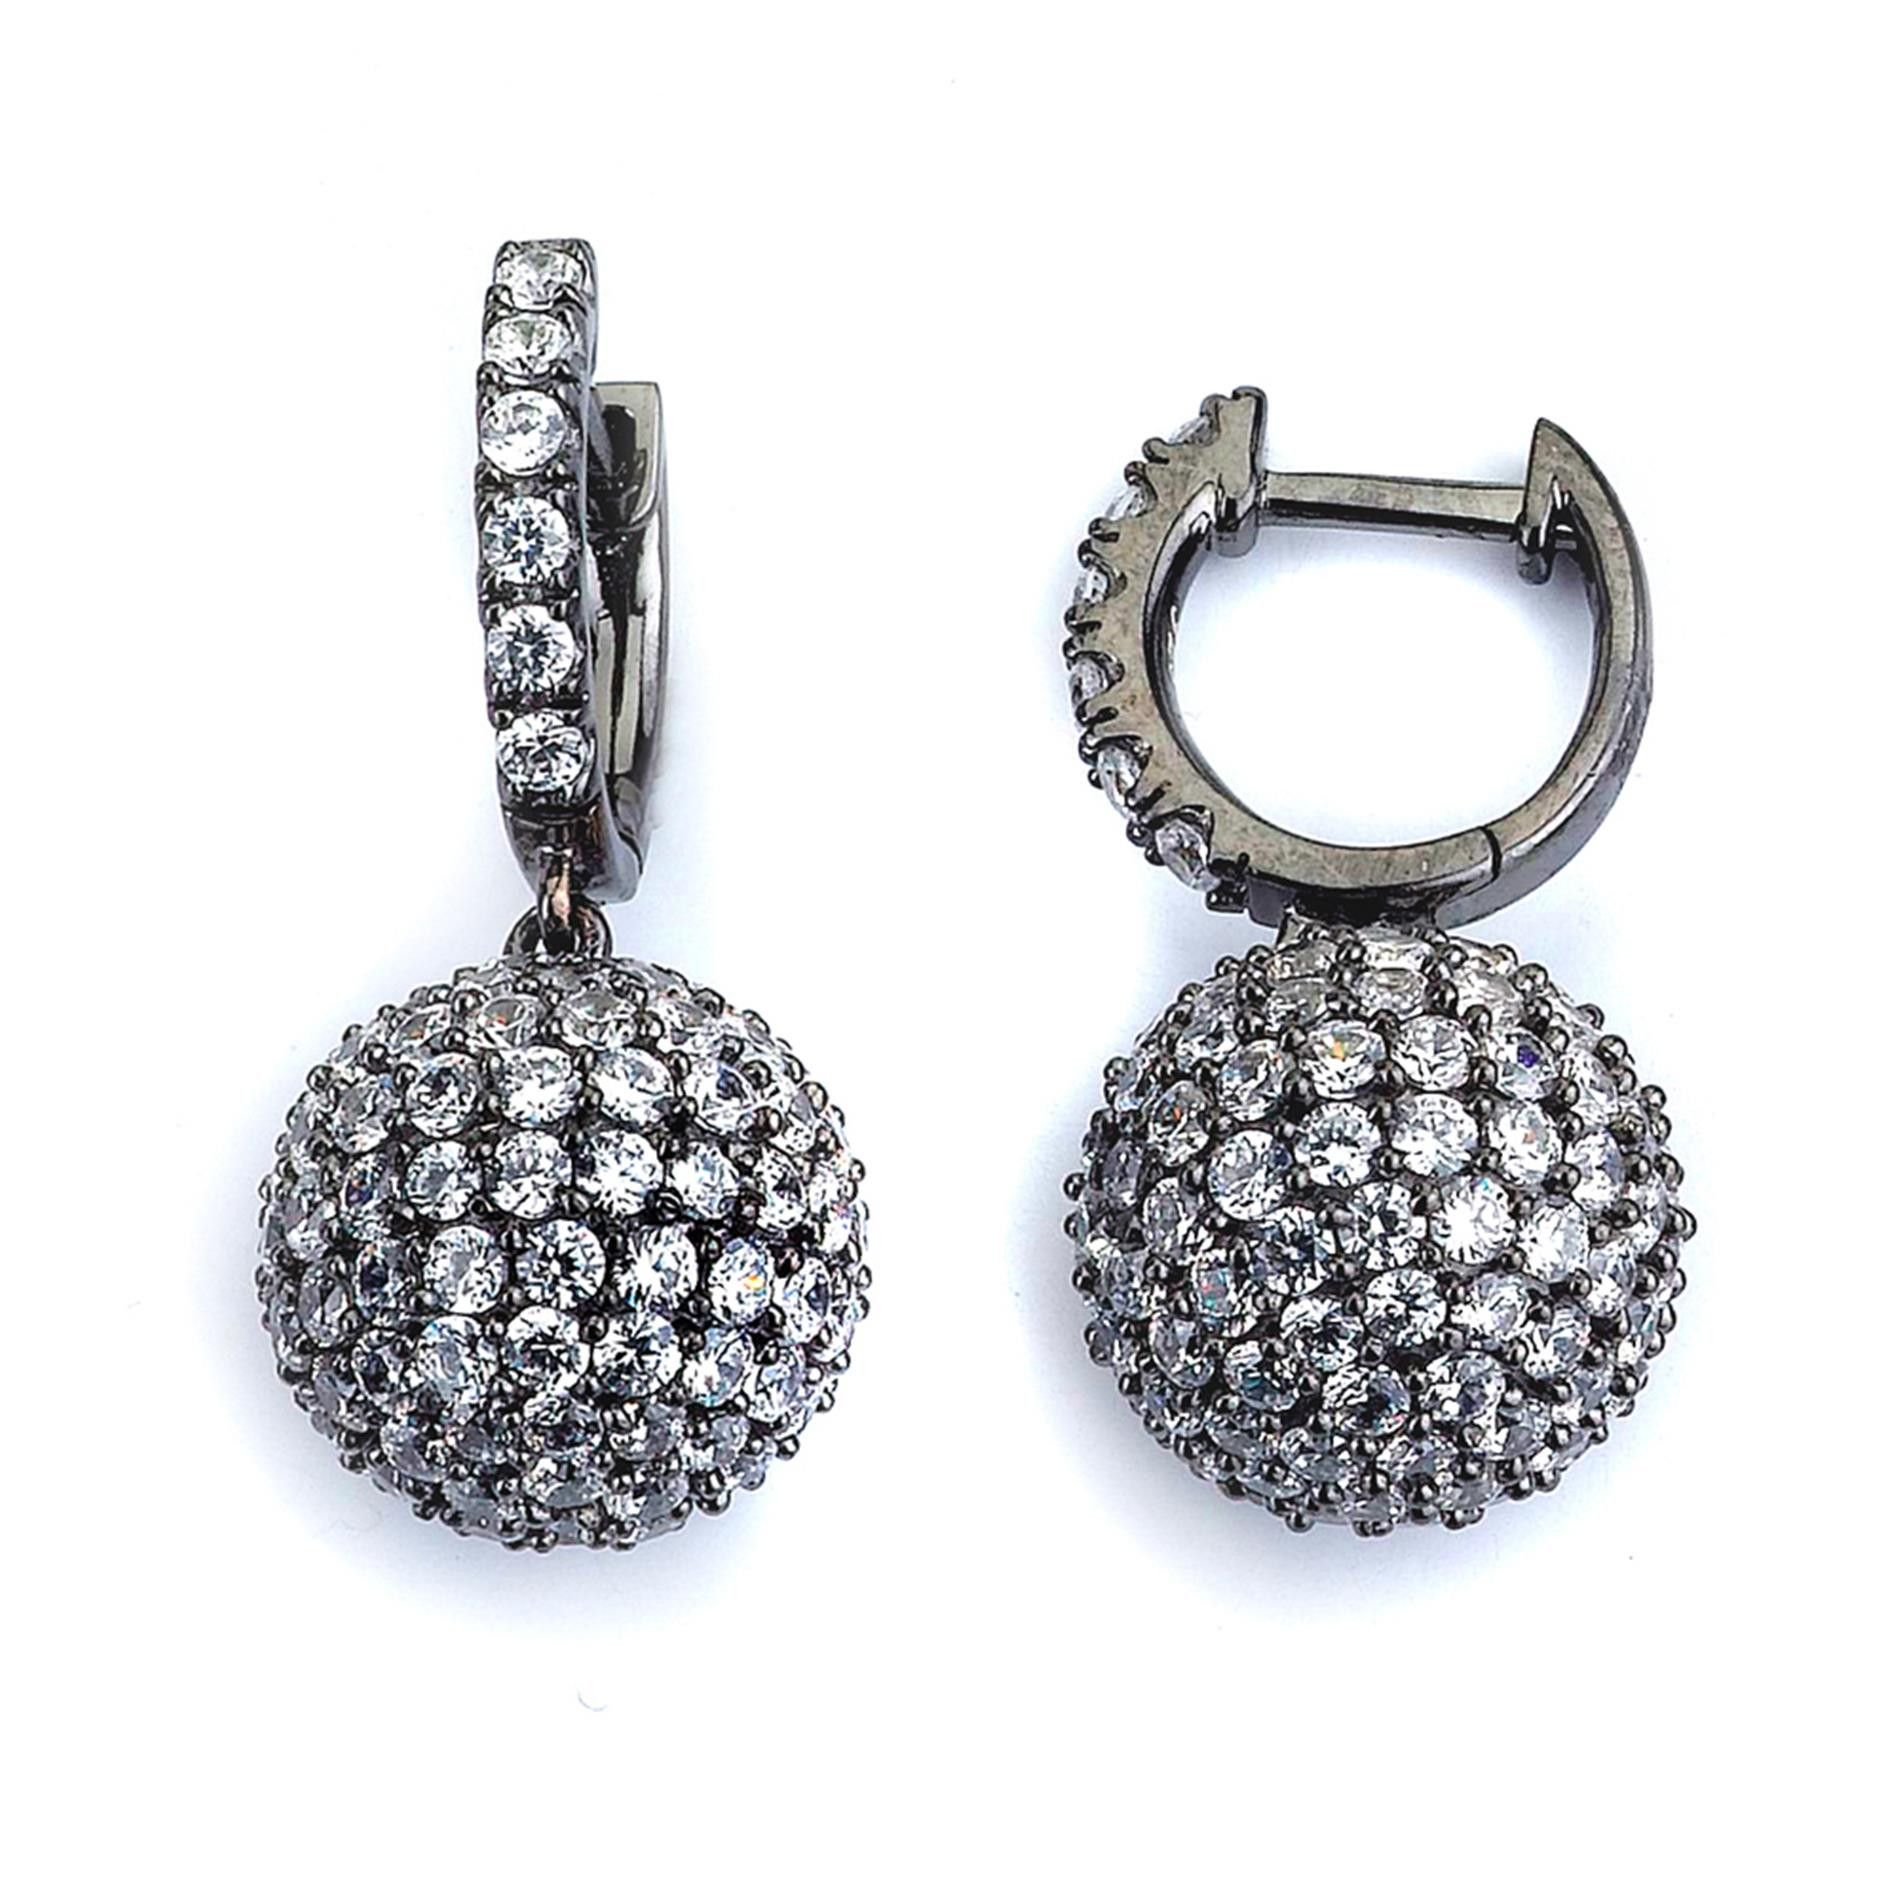 pinterest hinged x fashion post ornate tone have pin silver earrings back a with drop stud the products clear crystal